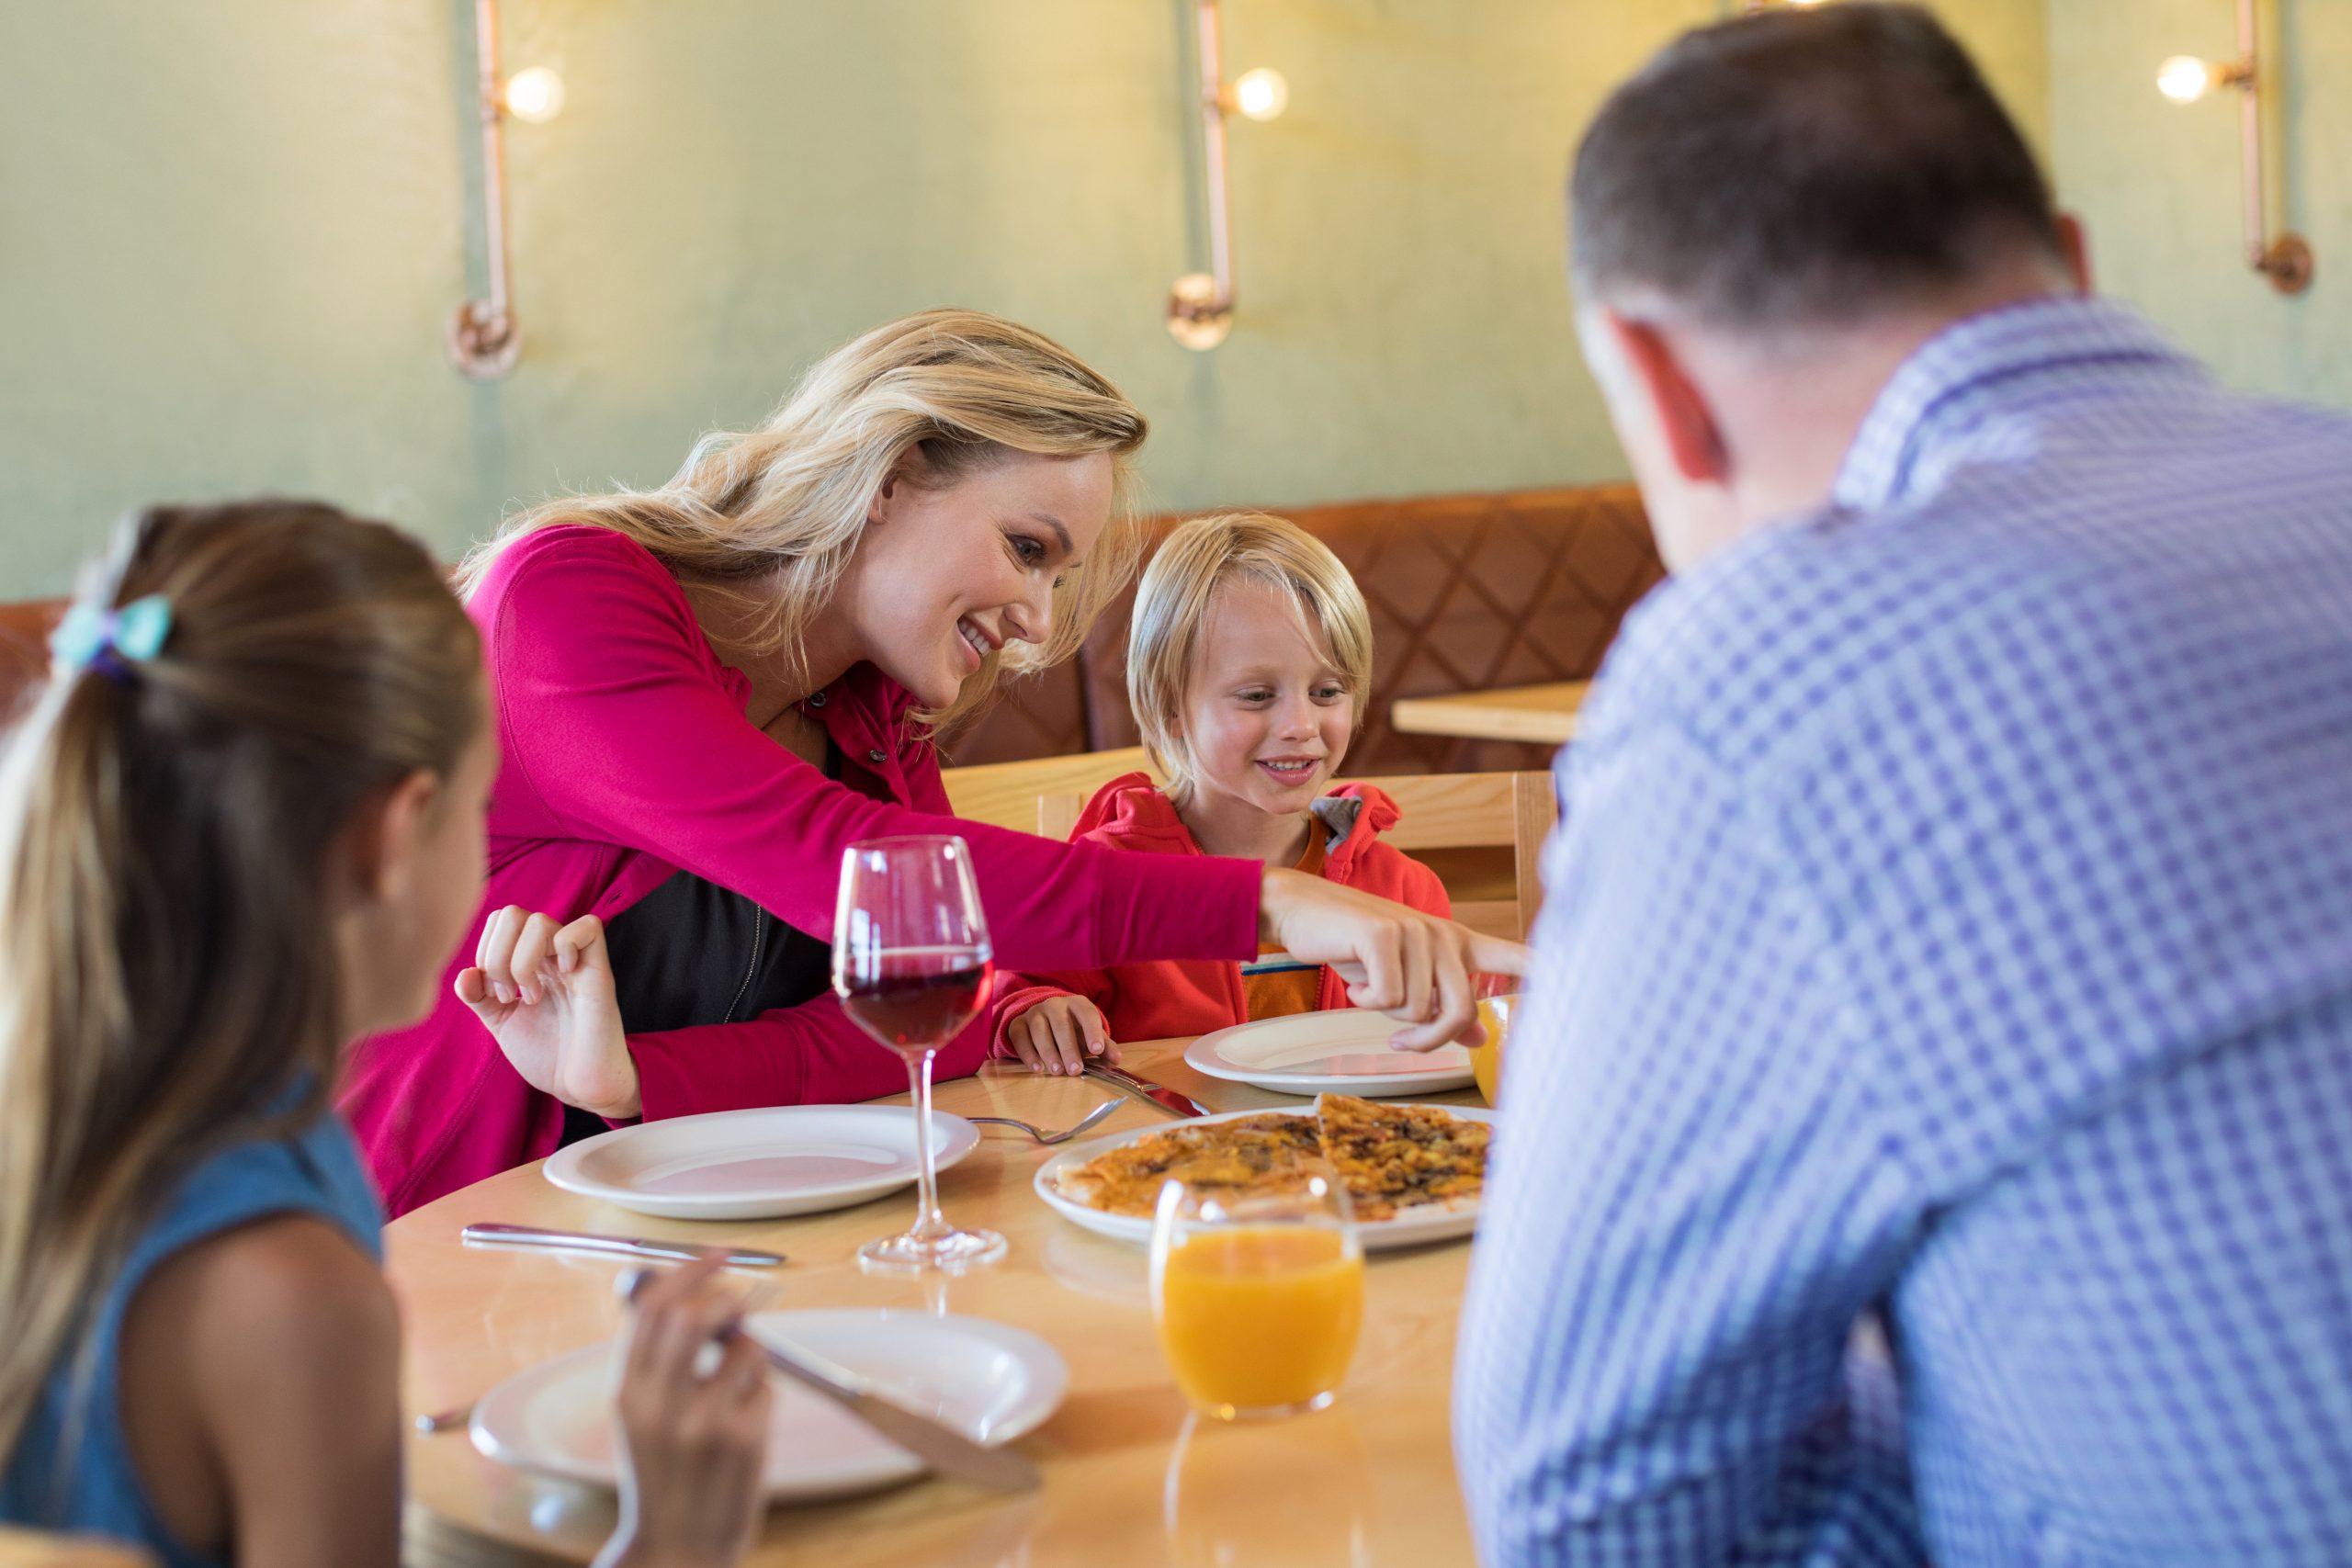 Eat Out To Help Out Scheme – How to make a claim?